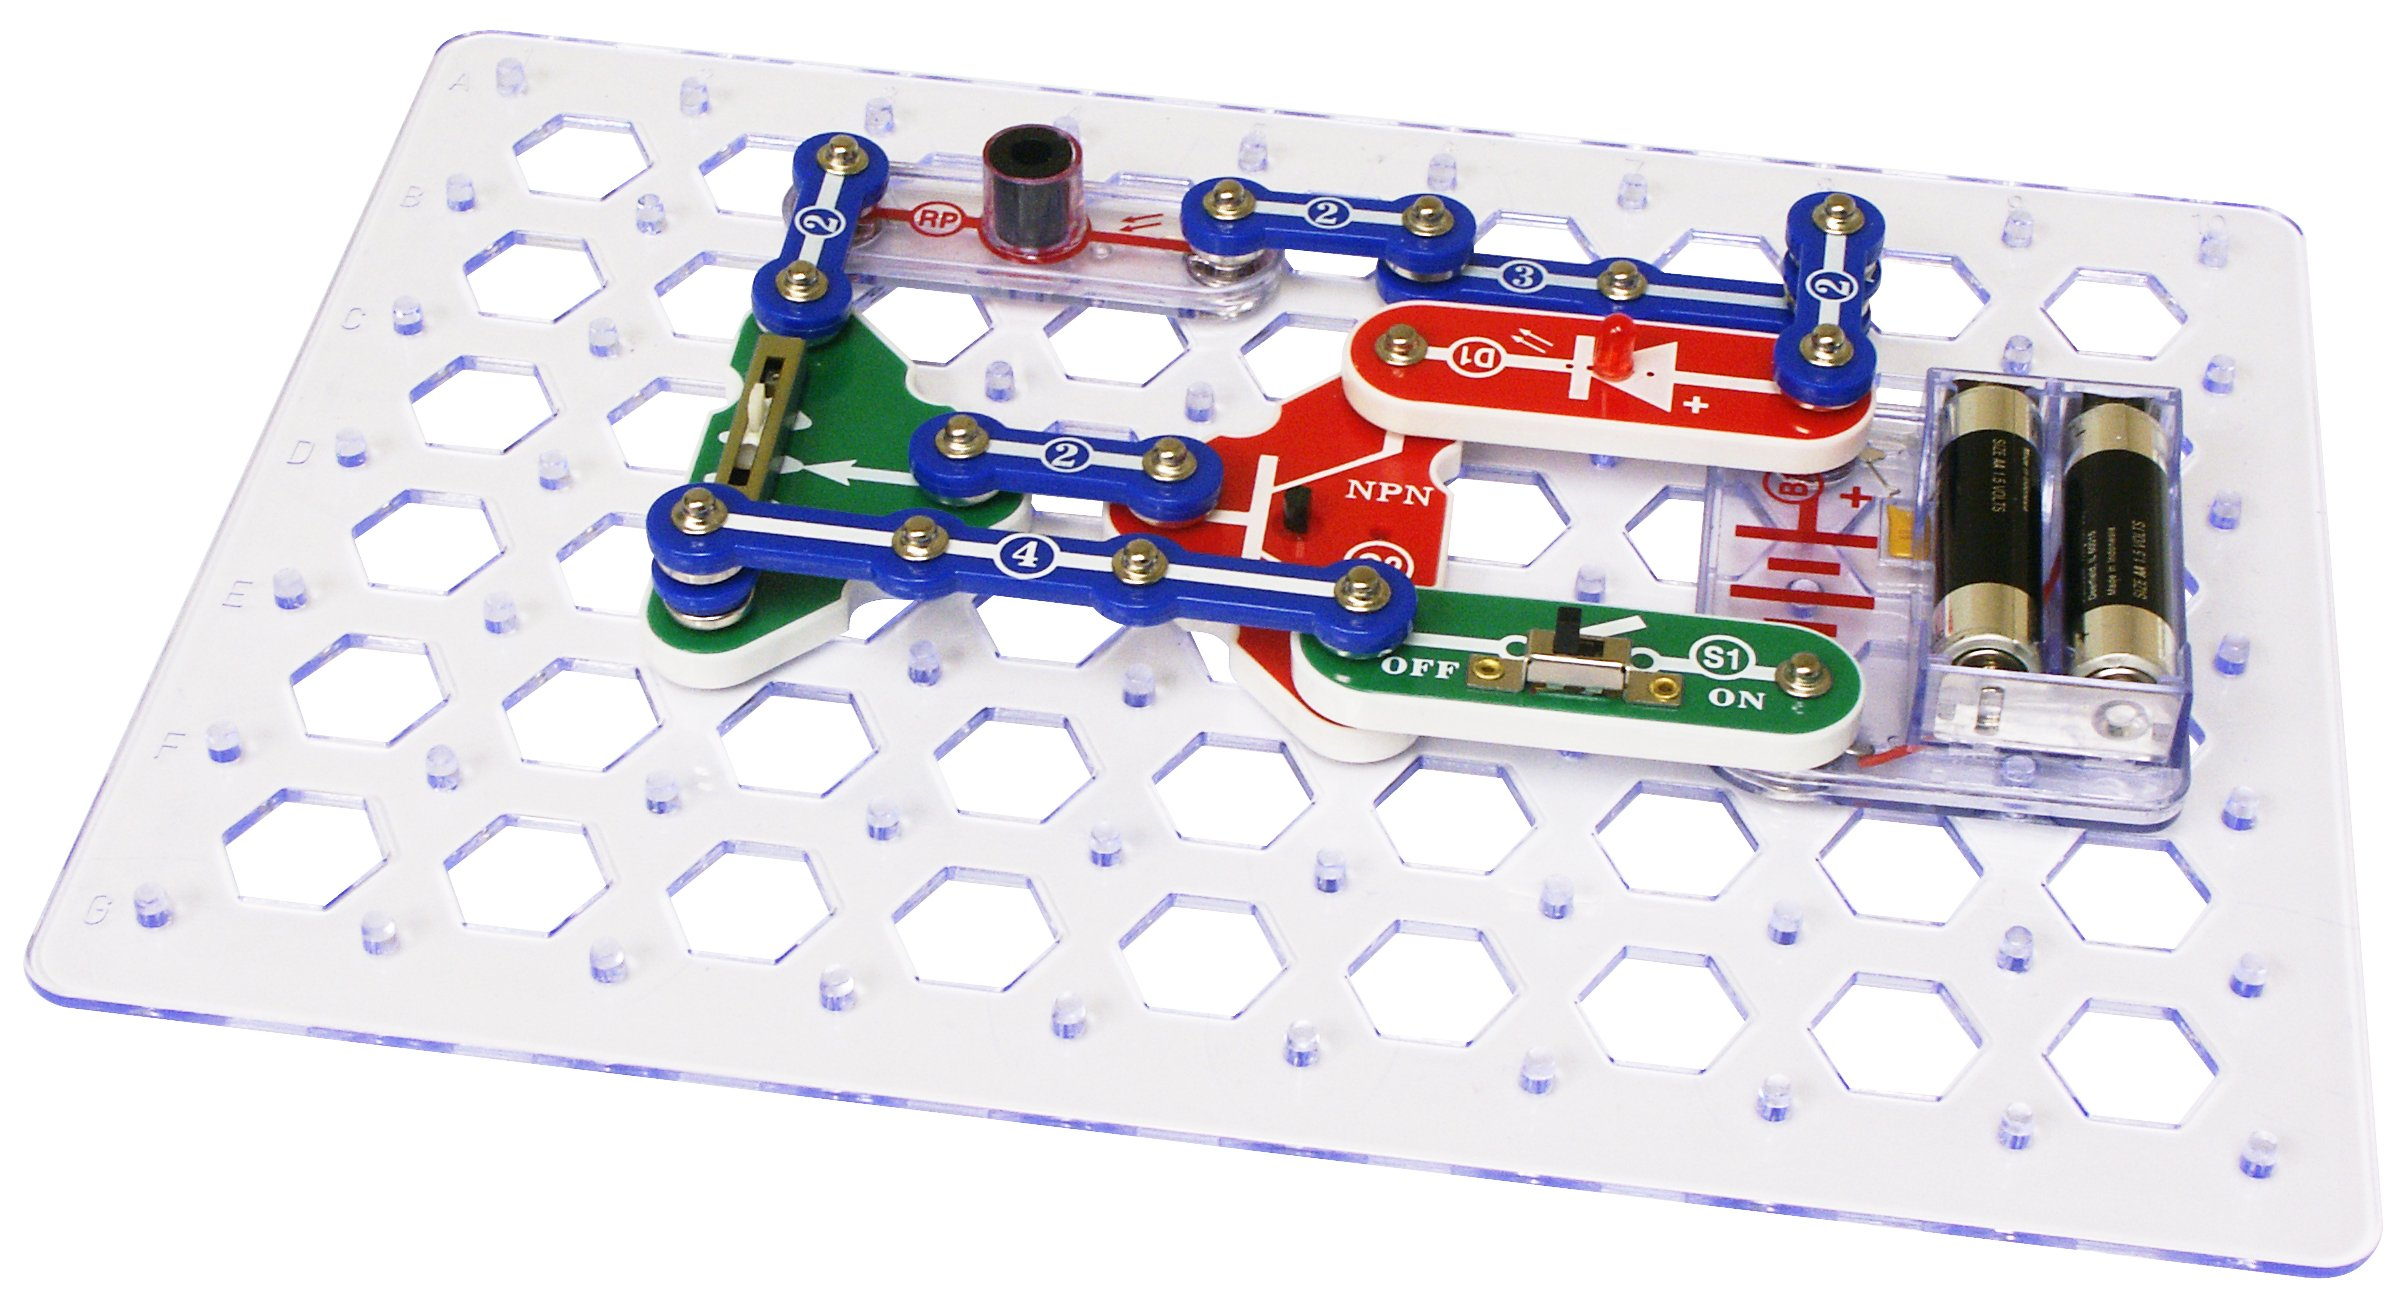 Snap Circuits Classic SC-300 Electronics Exploration Kit | Over 300 STEM Projects | 4-Color Project Manual | 60 Snap Modules | Unlimited Fun by Snap Circuits (Image #4)